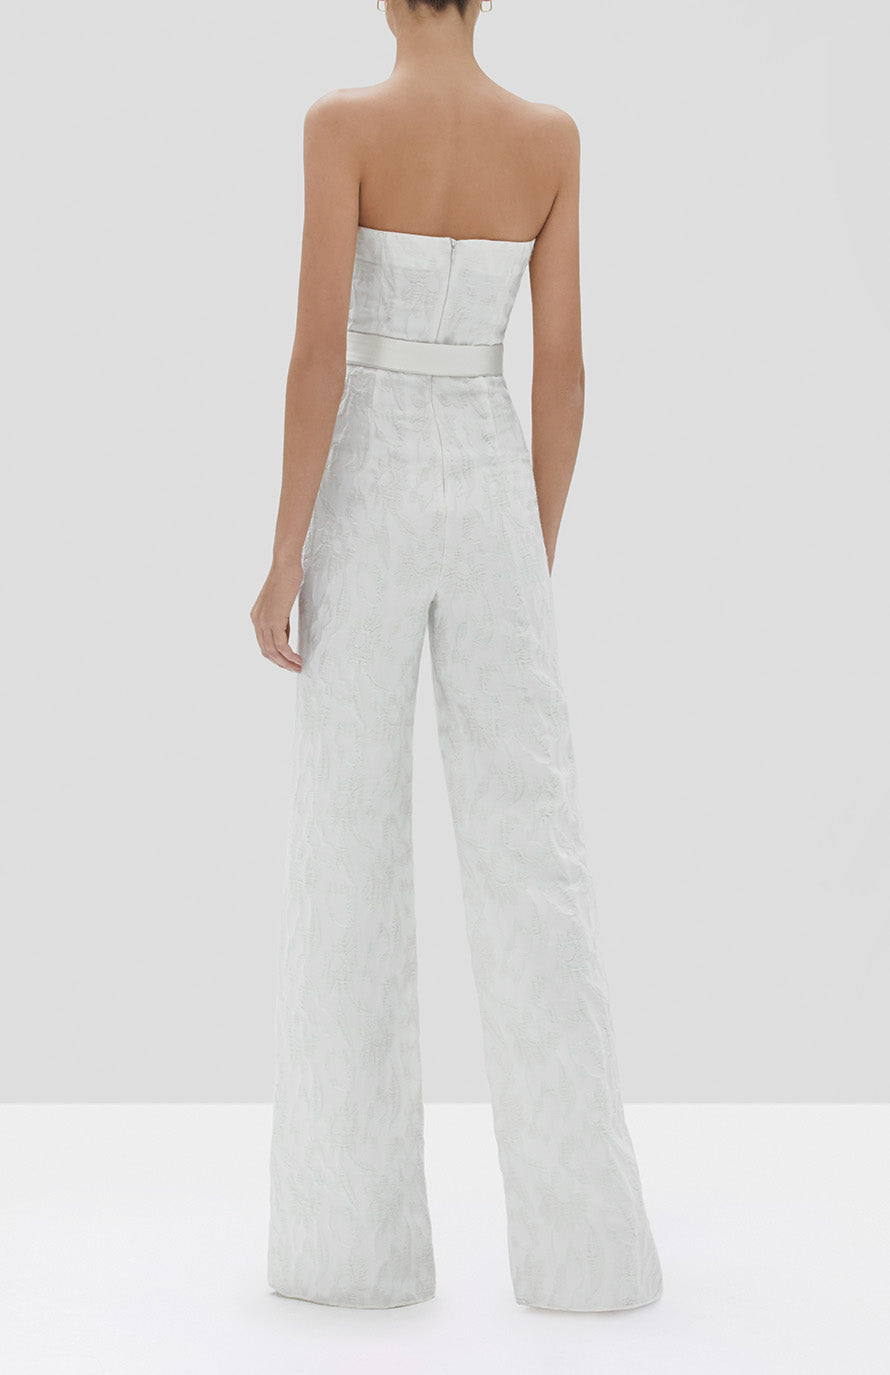 Alexis Venetia Jumpsuit in White Floral Jacquard - Rear View